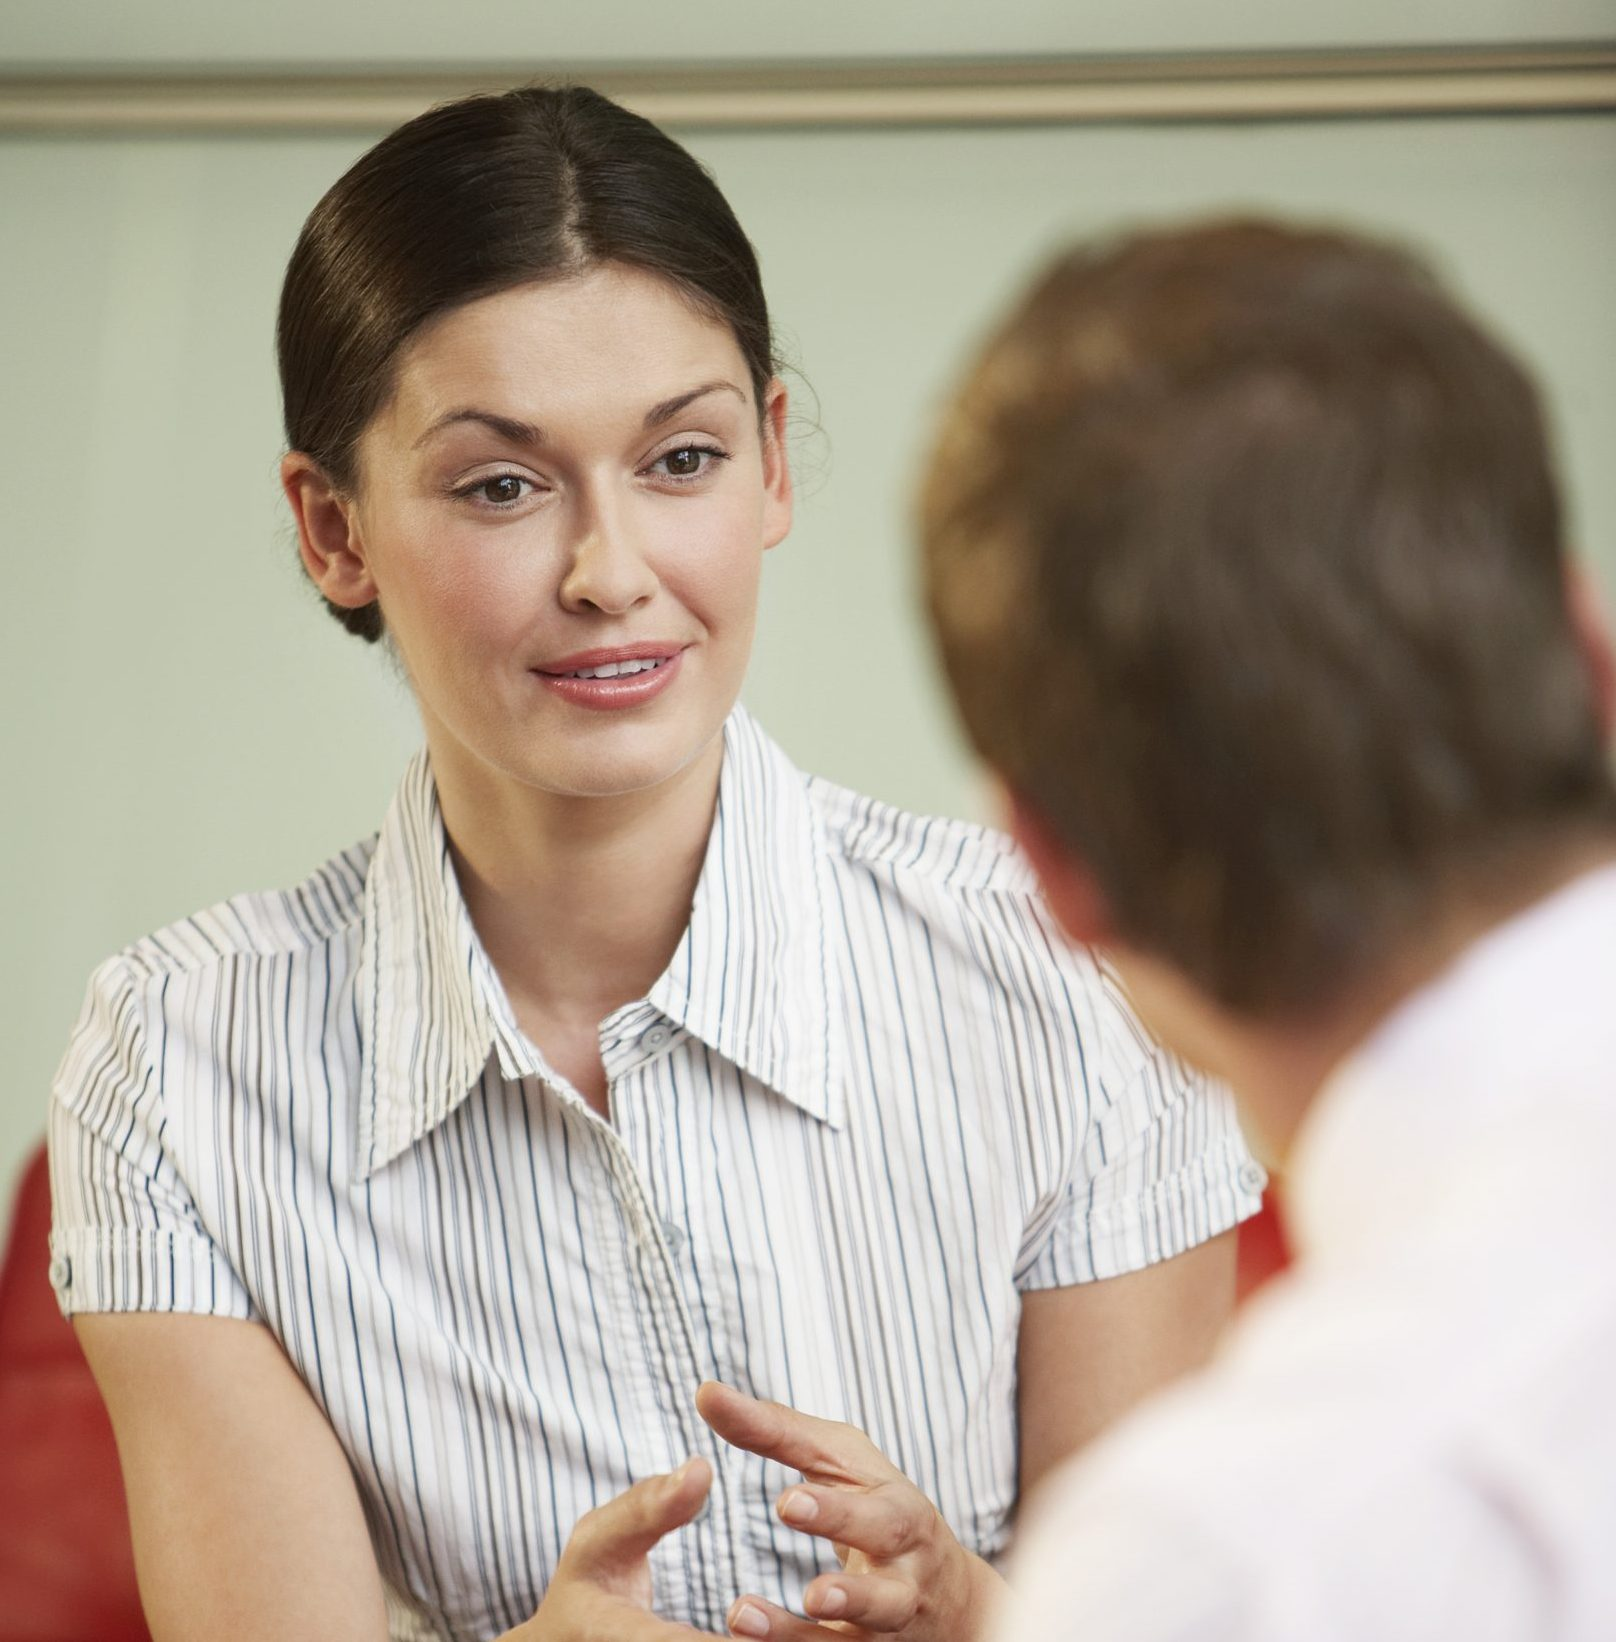 A woman doing an ACCENT REDUCTION MODIFICATION SPEECH THERAPY scaled e1621420578732